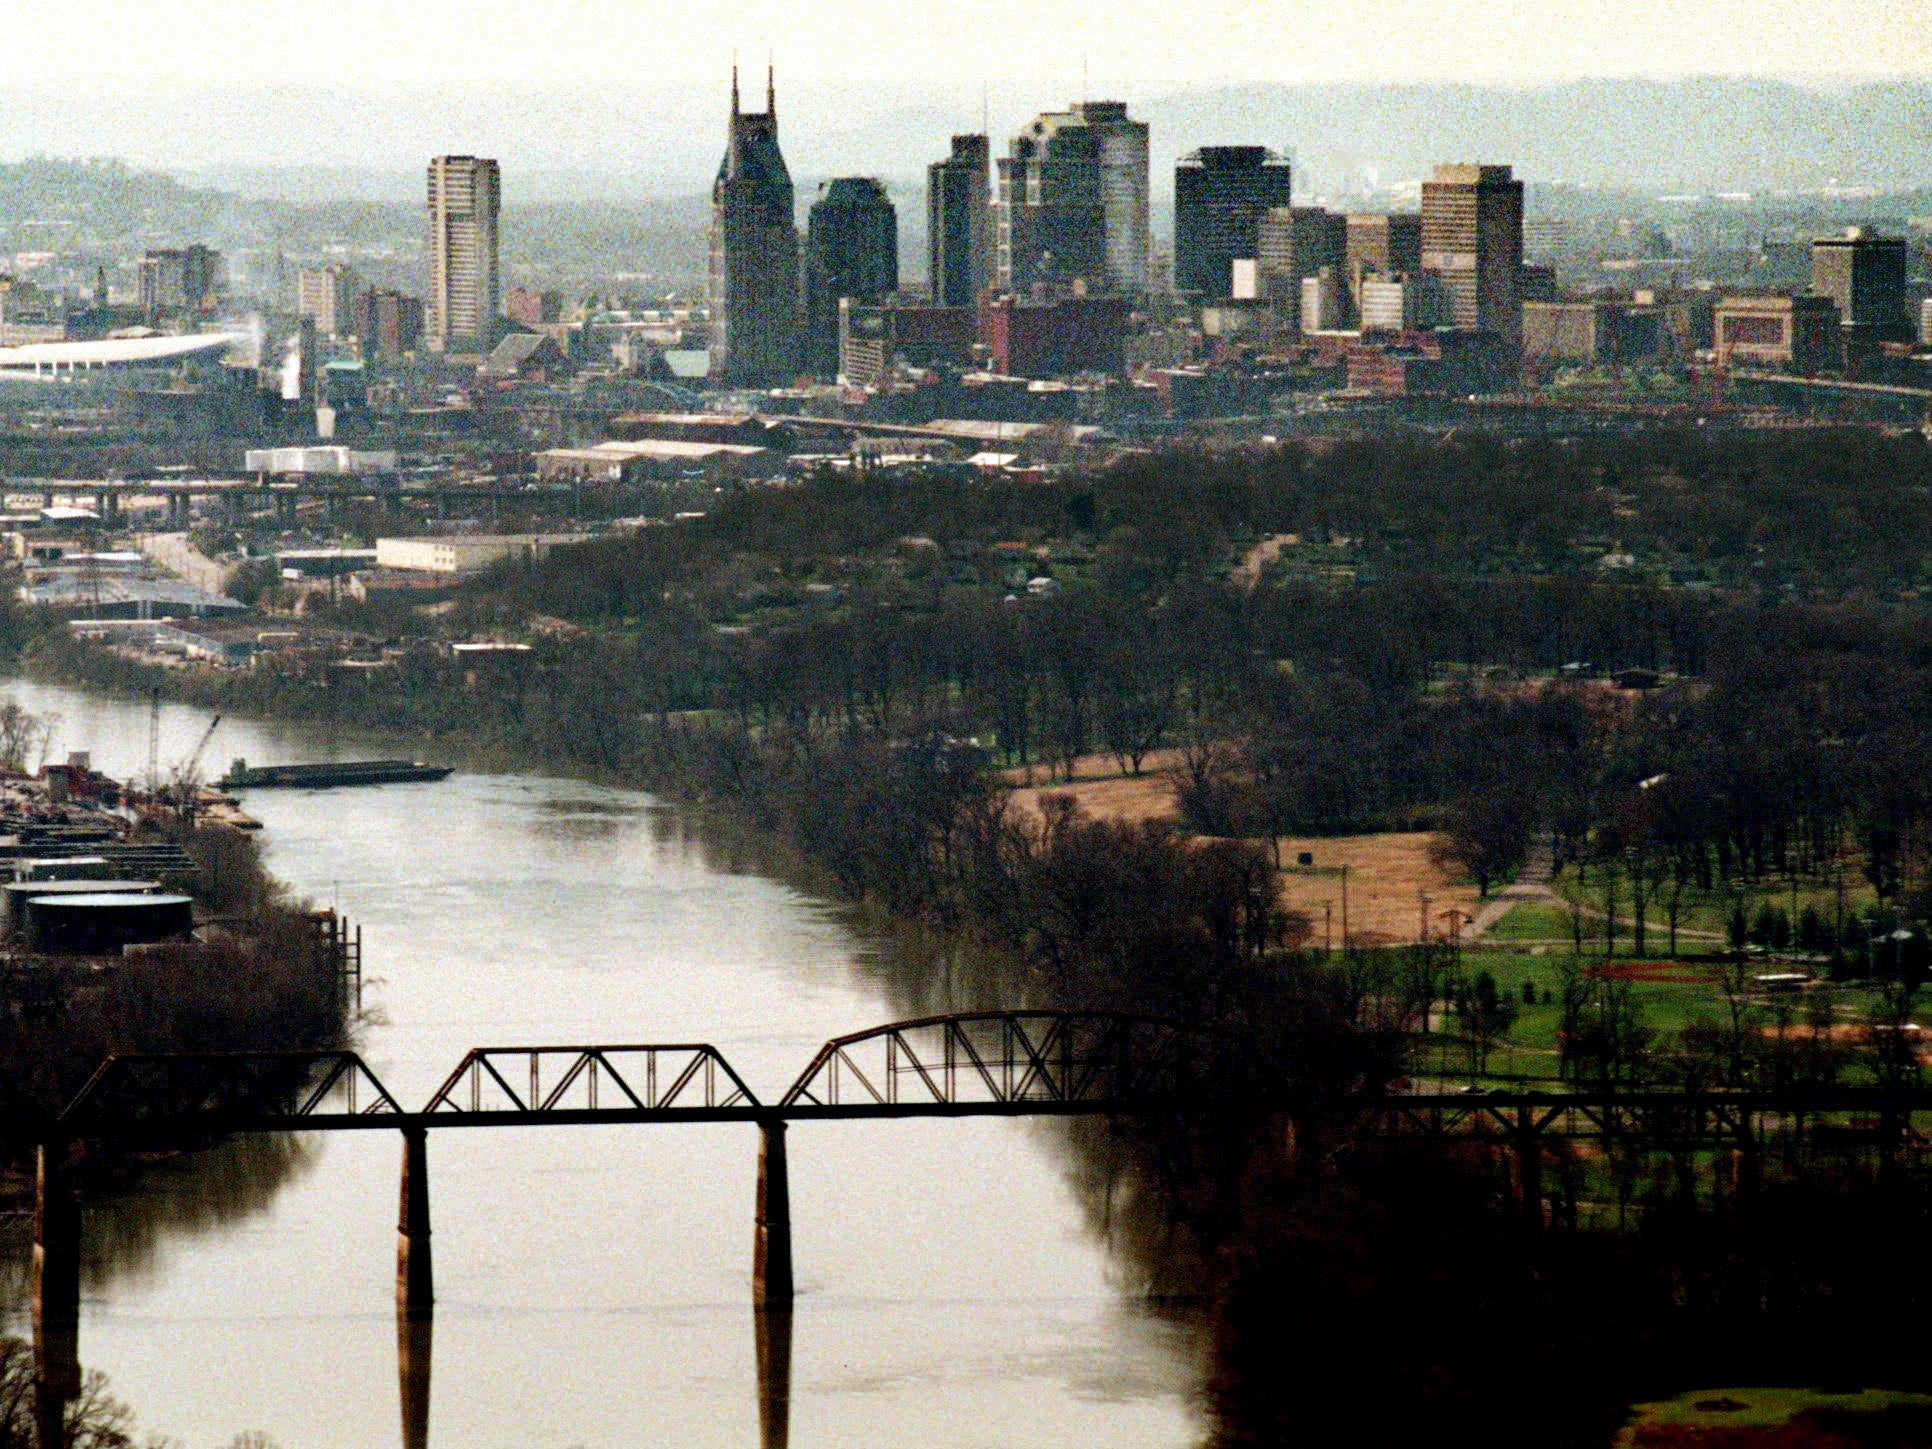 An aerial view to the Nashville skyline looking West up the Cumberland River on March 24, 1998.